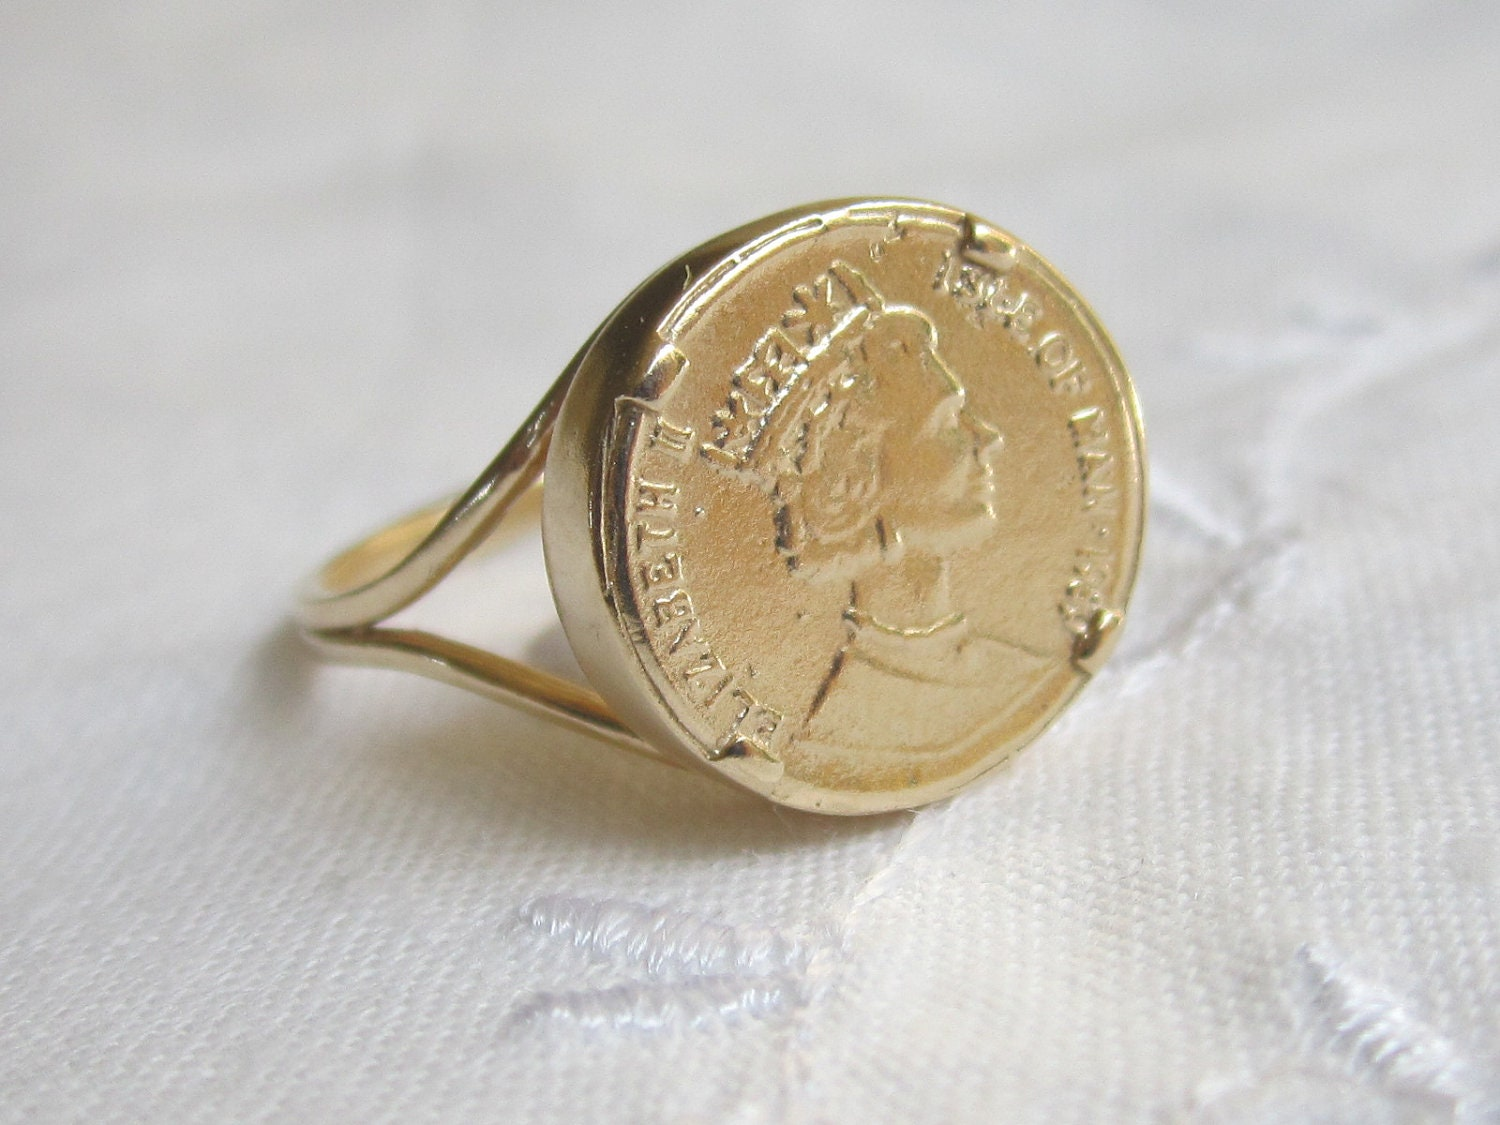 Gold Coin Rings For Sale